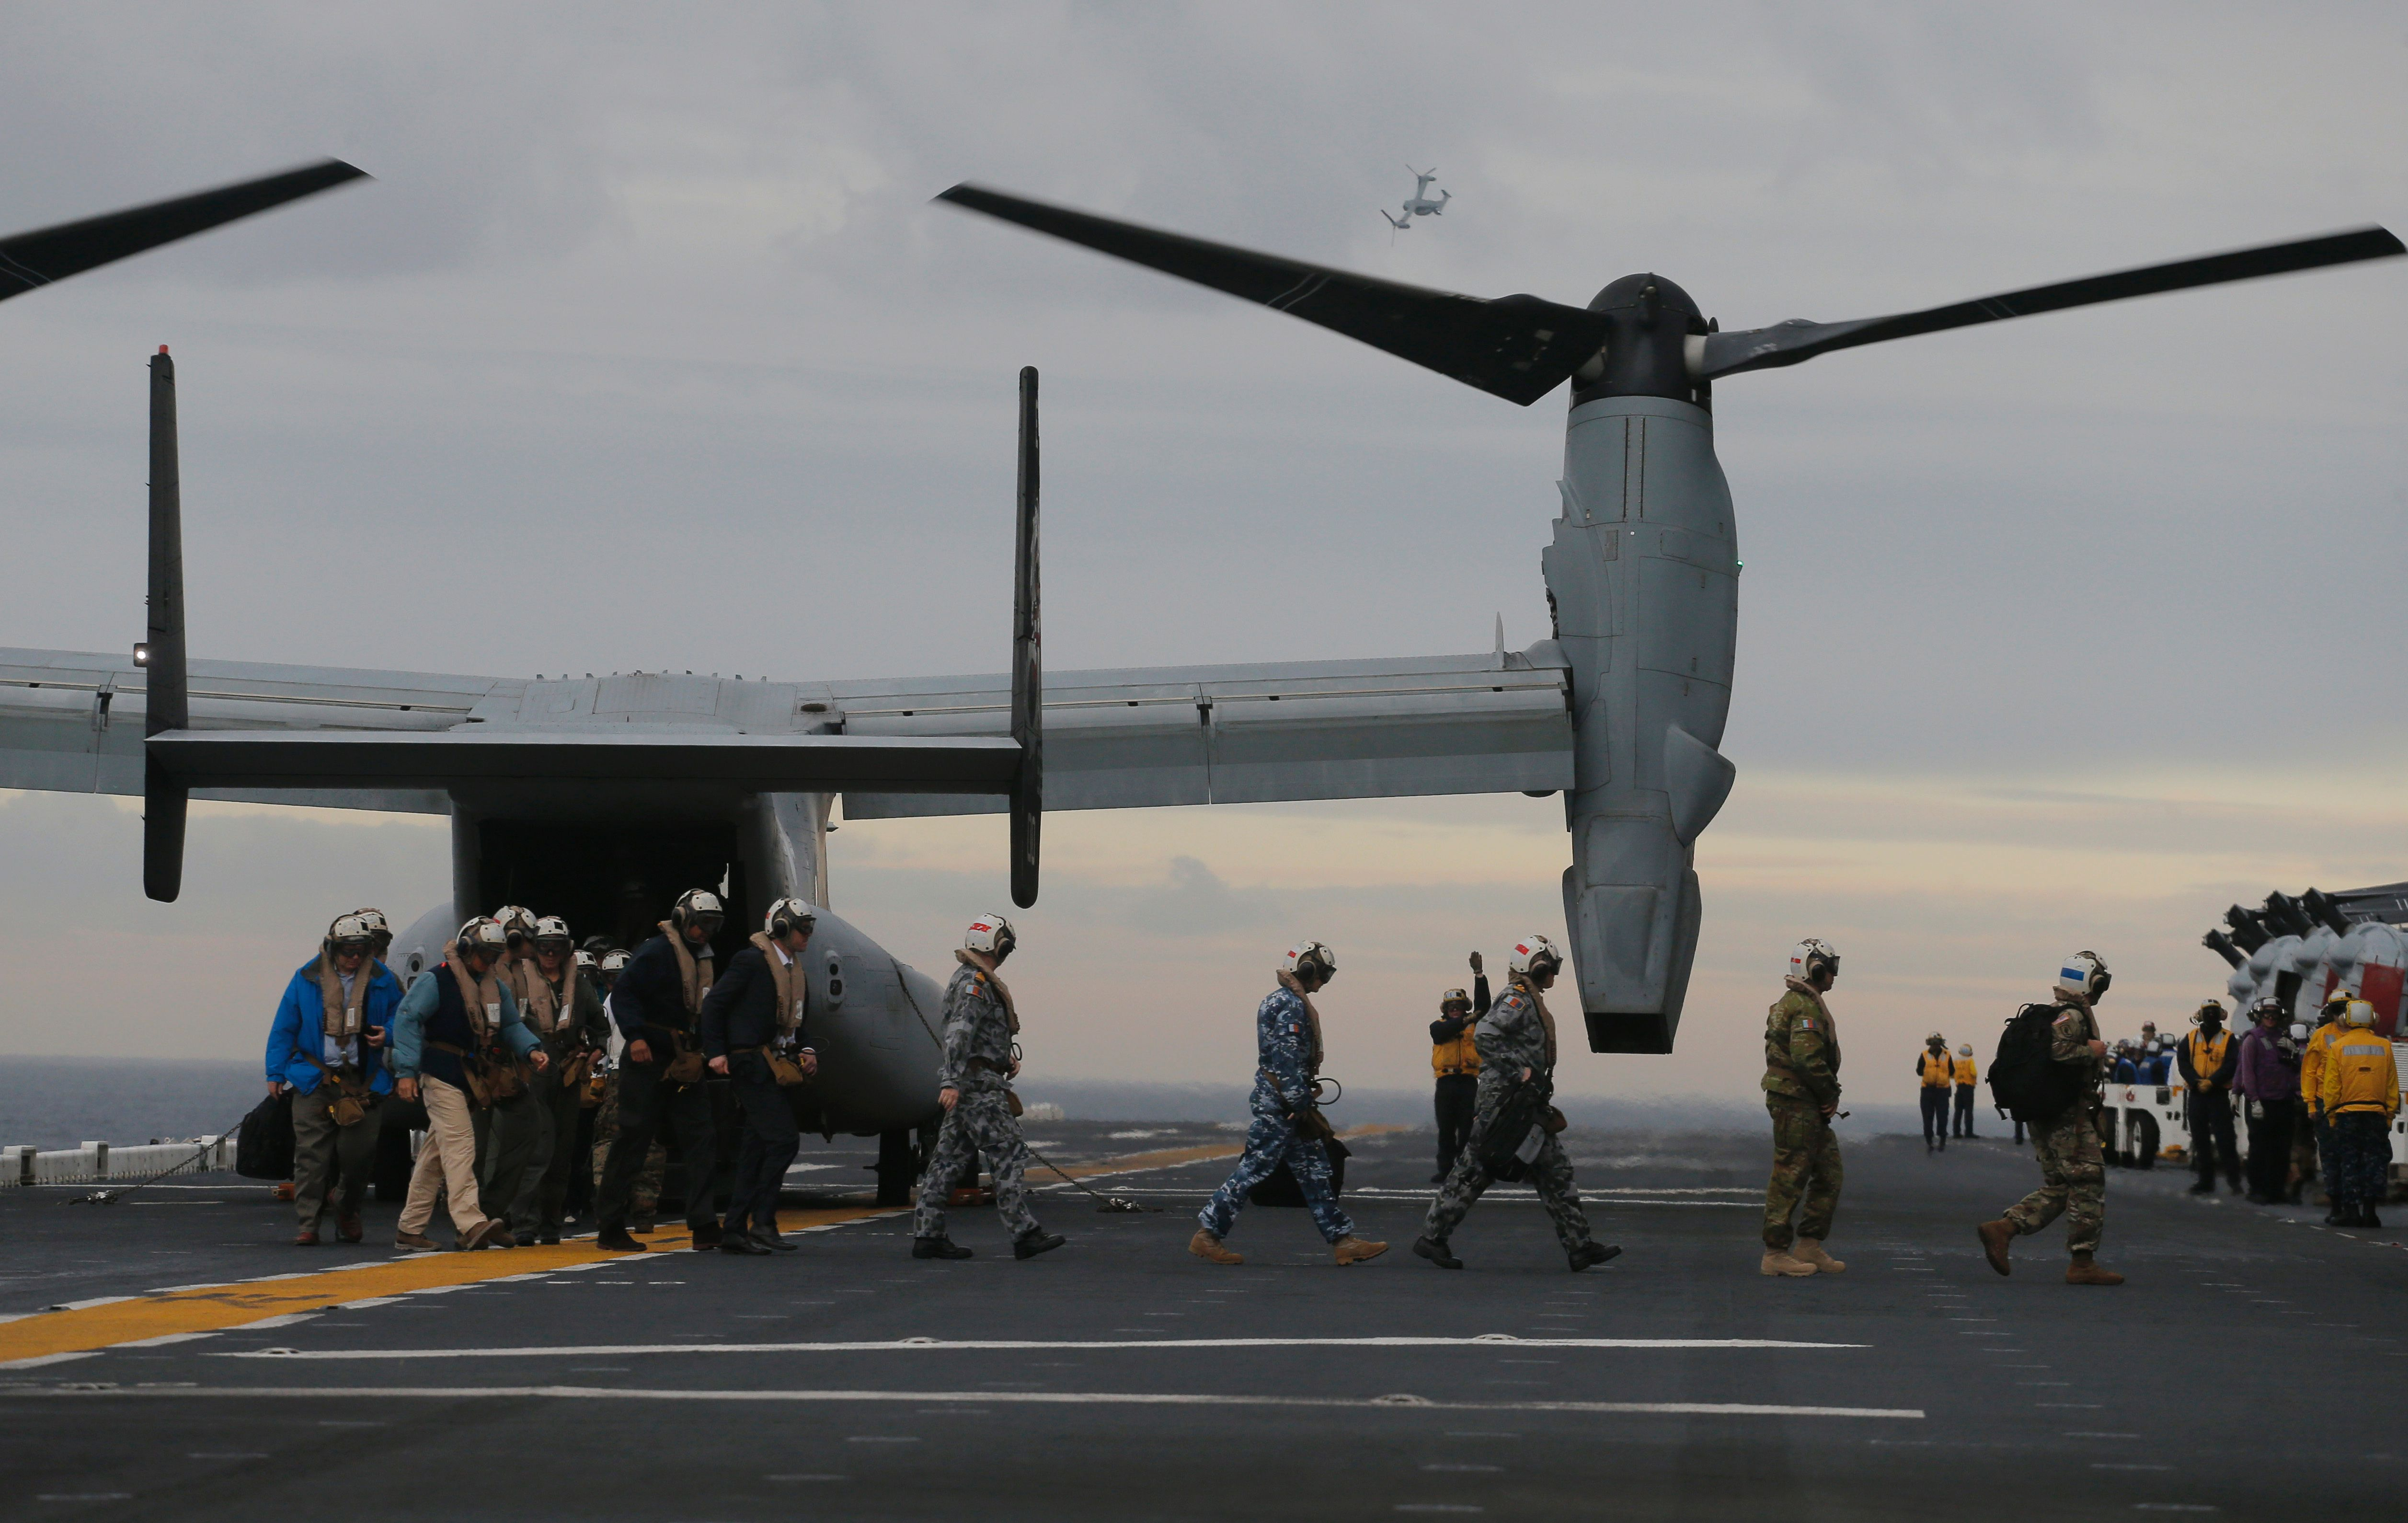 Participants in a ceremony marking the start of Talisman Saber 2017, a biennial joint military exercise between the United States and Australia, arrive on a US Marines MV-22B Osprey Aircraft on the deck of the USS Bonhomme Richard amphibious assault ship off the coast of Sydney on June 29, 2017. / AFP PHOTO / POOL / JASON REED        (Photo credit should read JASON REED/AFP/Getty Images)